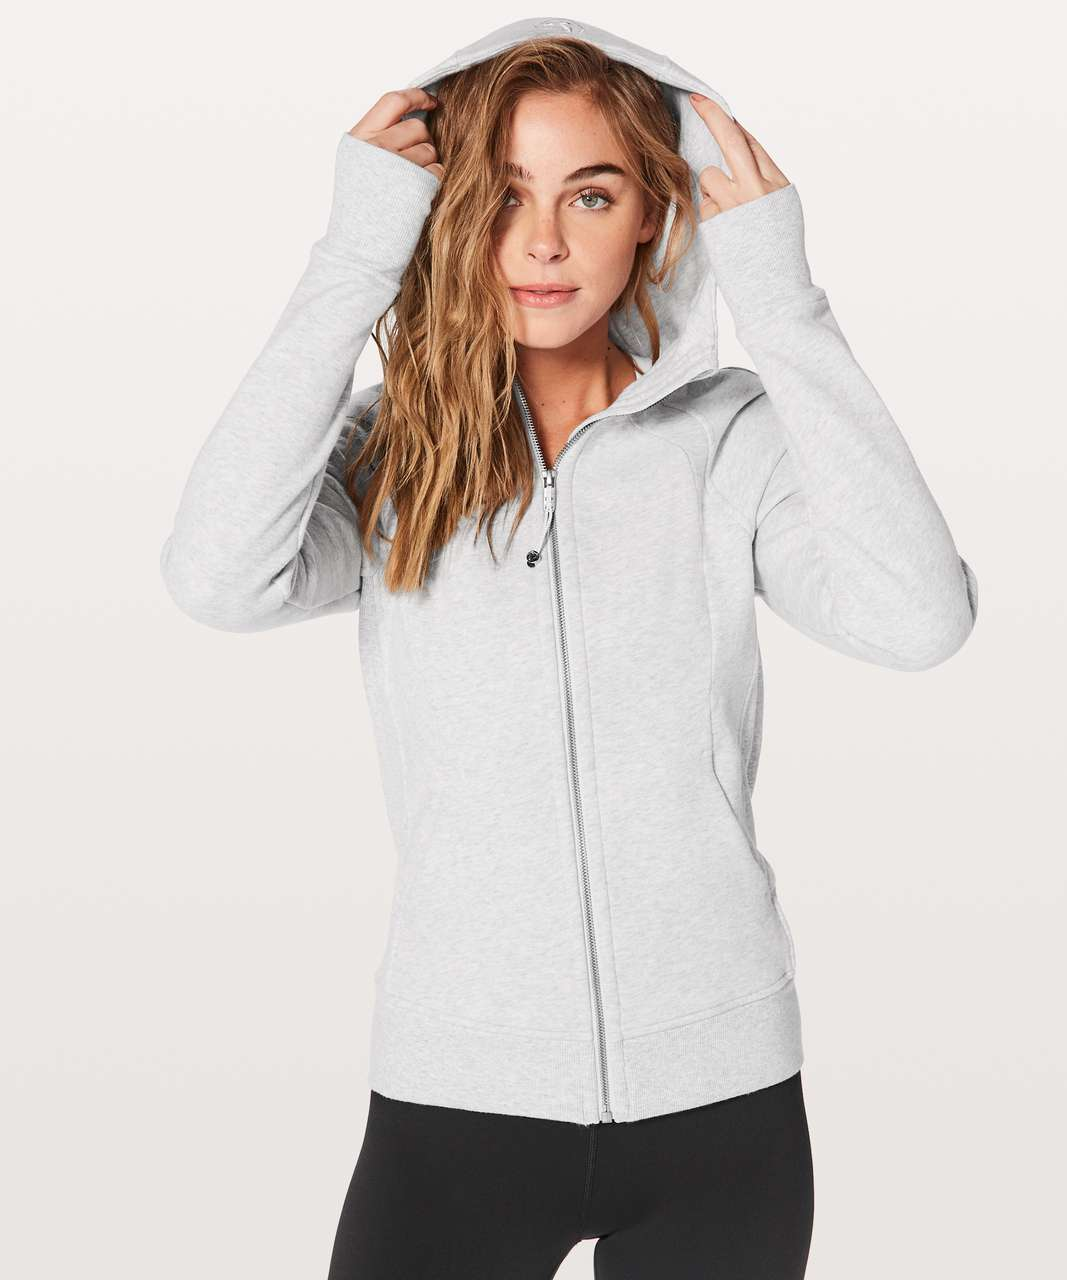 Lululemon Scuba Hoodie *Light Cotton Fleece - Heathered Core Ultra Light Grey / Nimbus